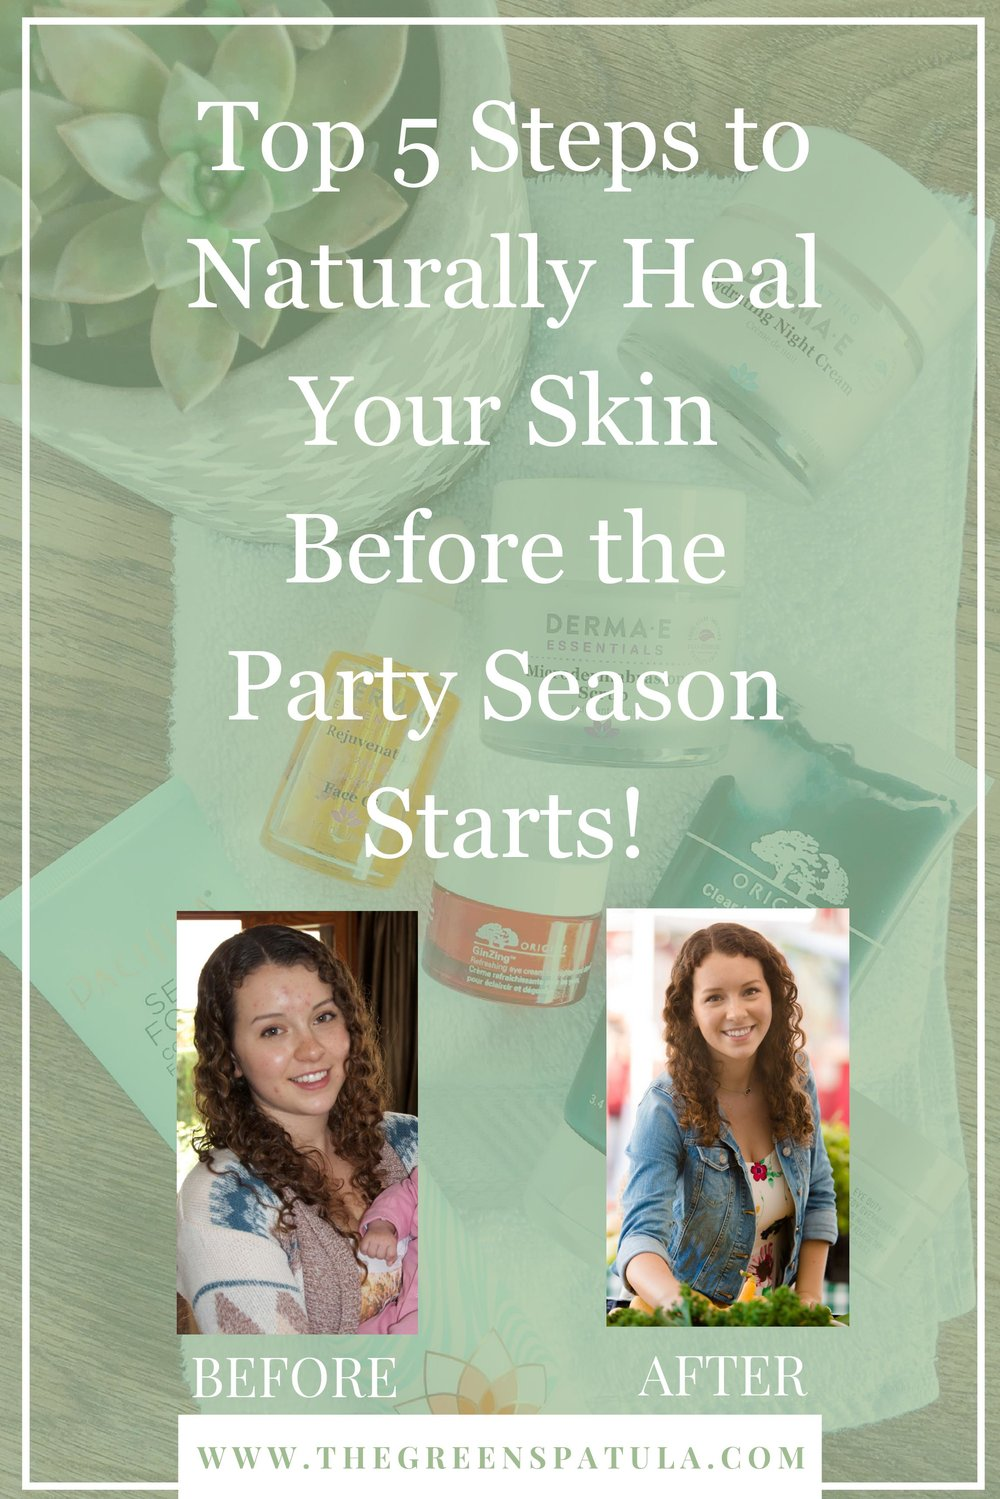 Heal your skin naturally with these 5 tips. There are several factors that influence our skin's health like what we eat, our exercise routine, and how we process emotions like stress). Once I learned this, it was way easier to treat my acne since I knew what I should/shouldn't do. Learn my top 5 tips to clear your skin before the holiday and party season begin! #clearskin #vegan #plantbased #acne #adultacne #hormons #balancedhormones